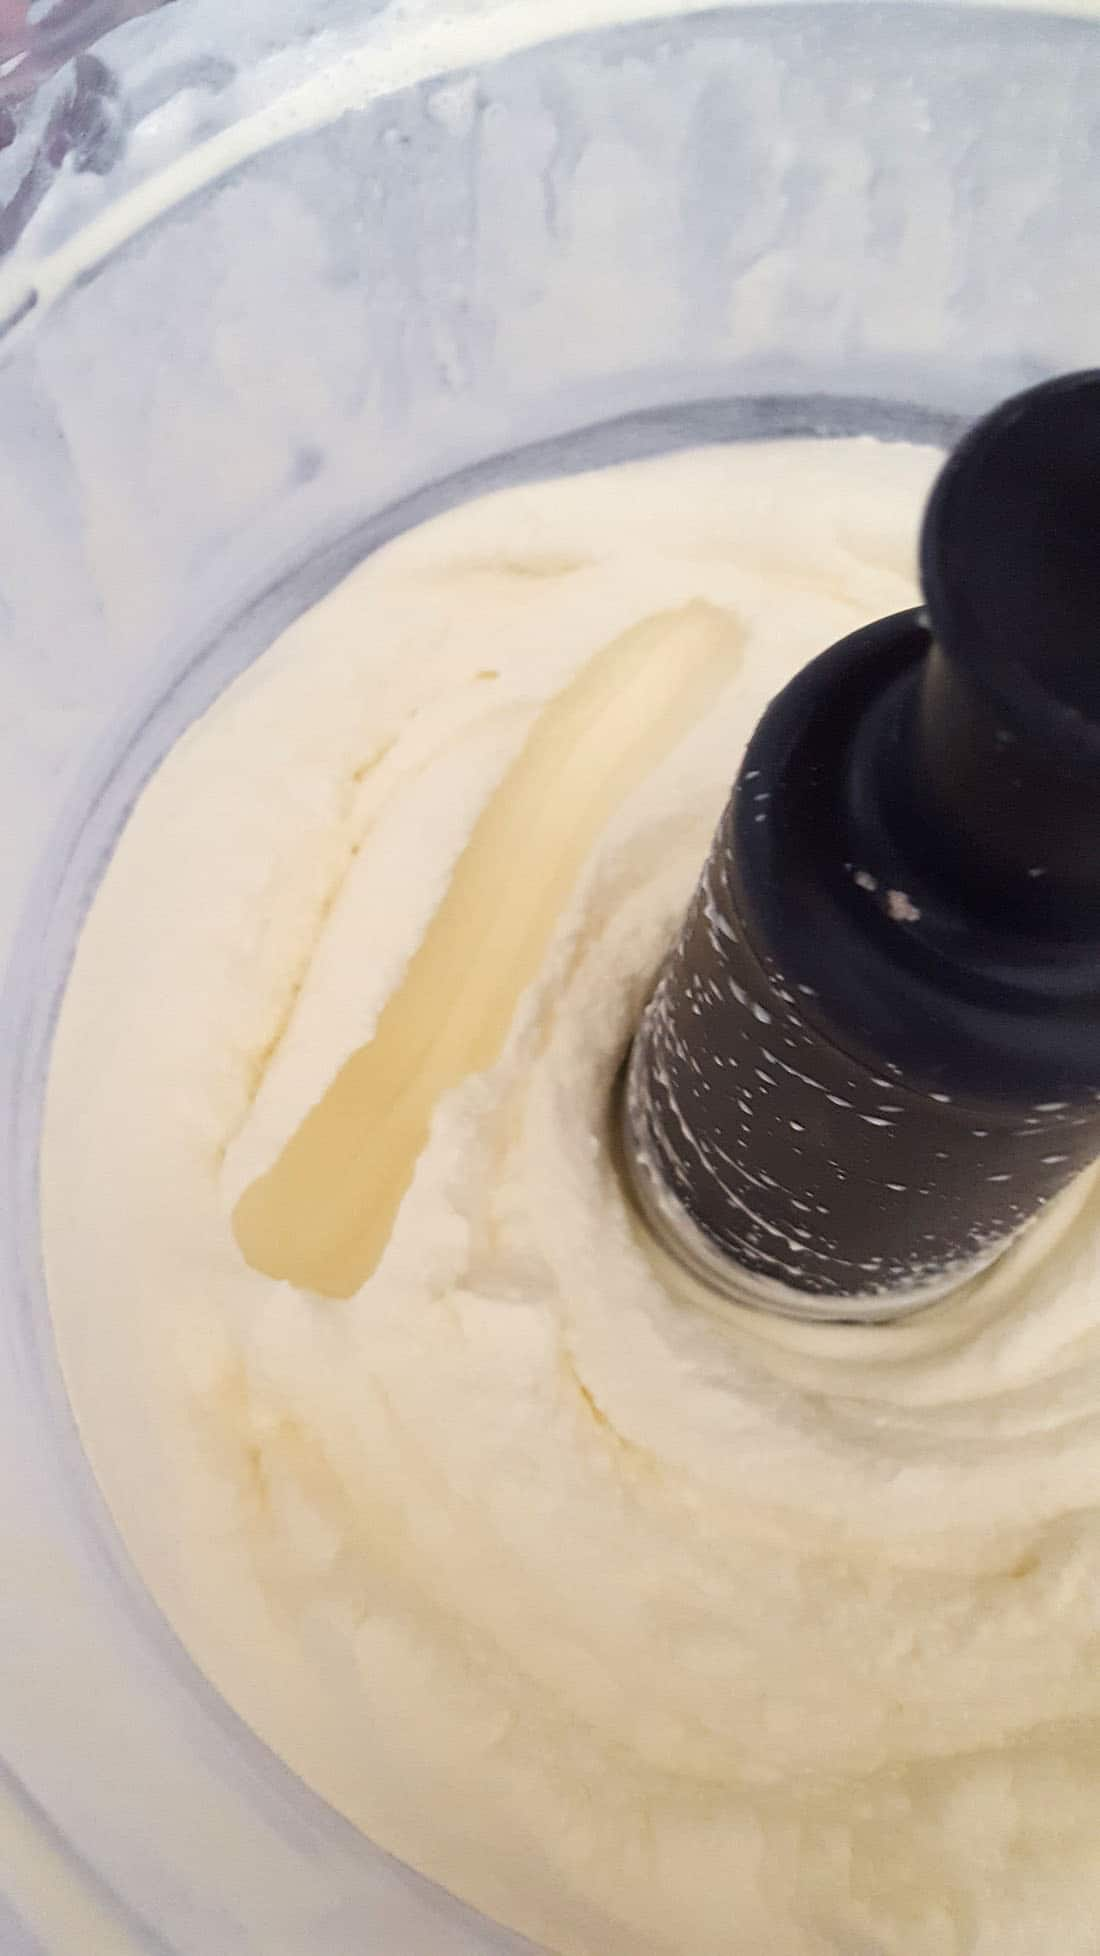 Whopped cream with a well made by running a knife through it.